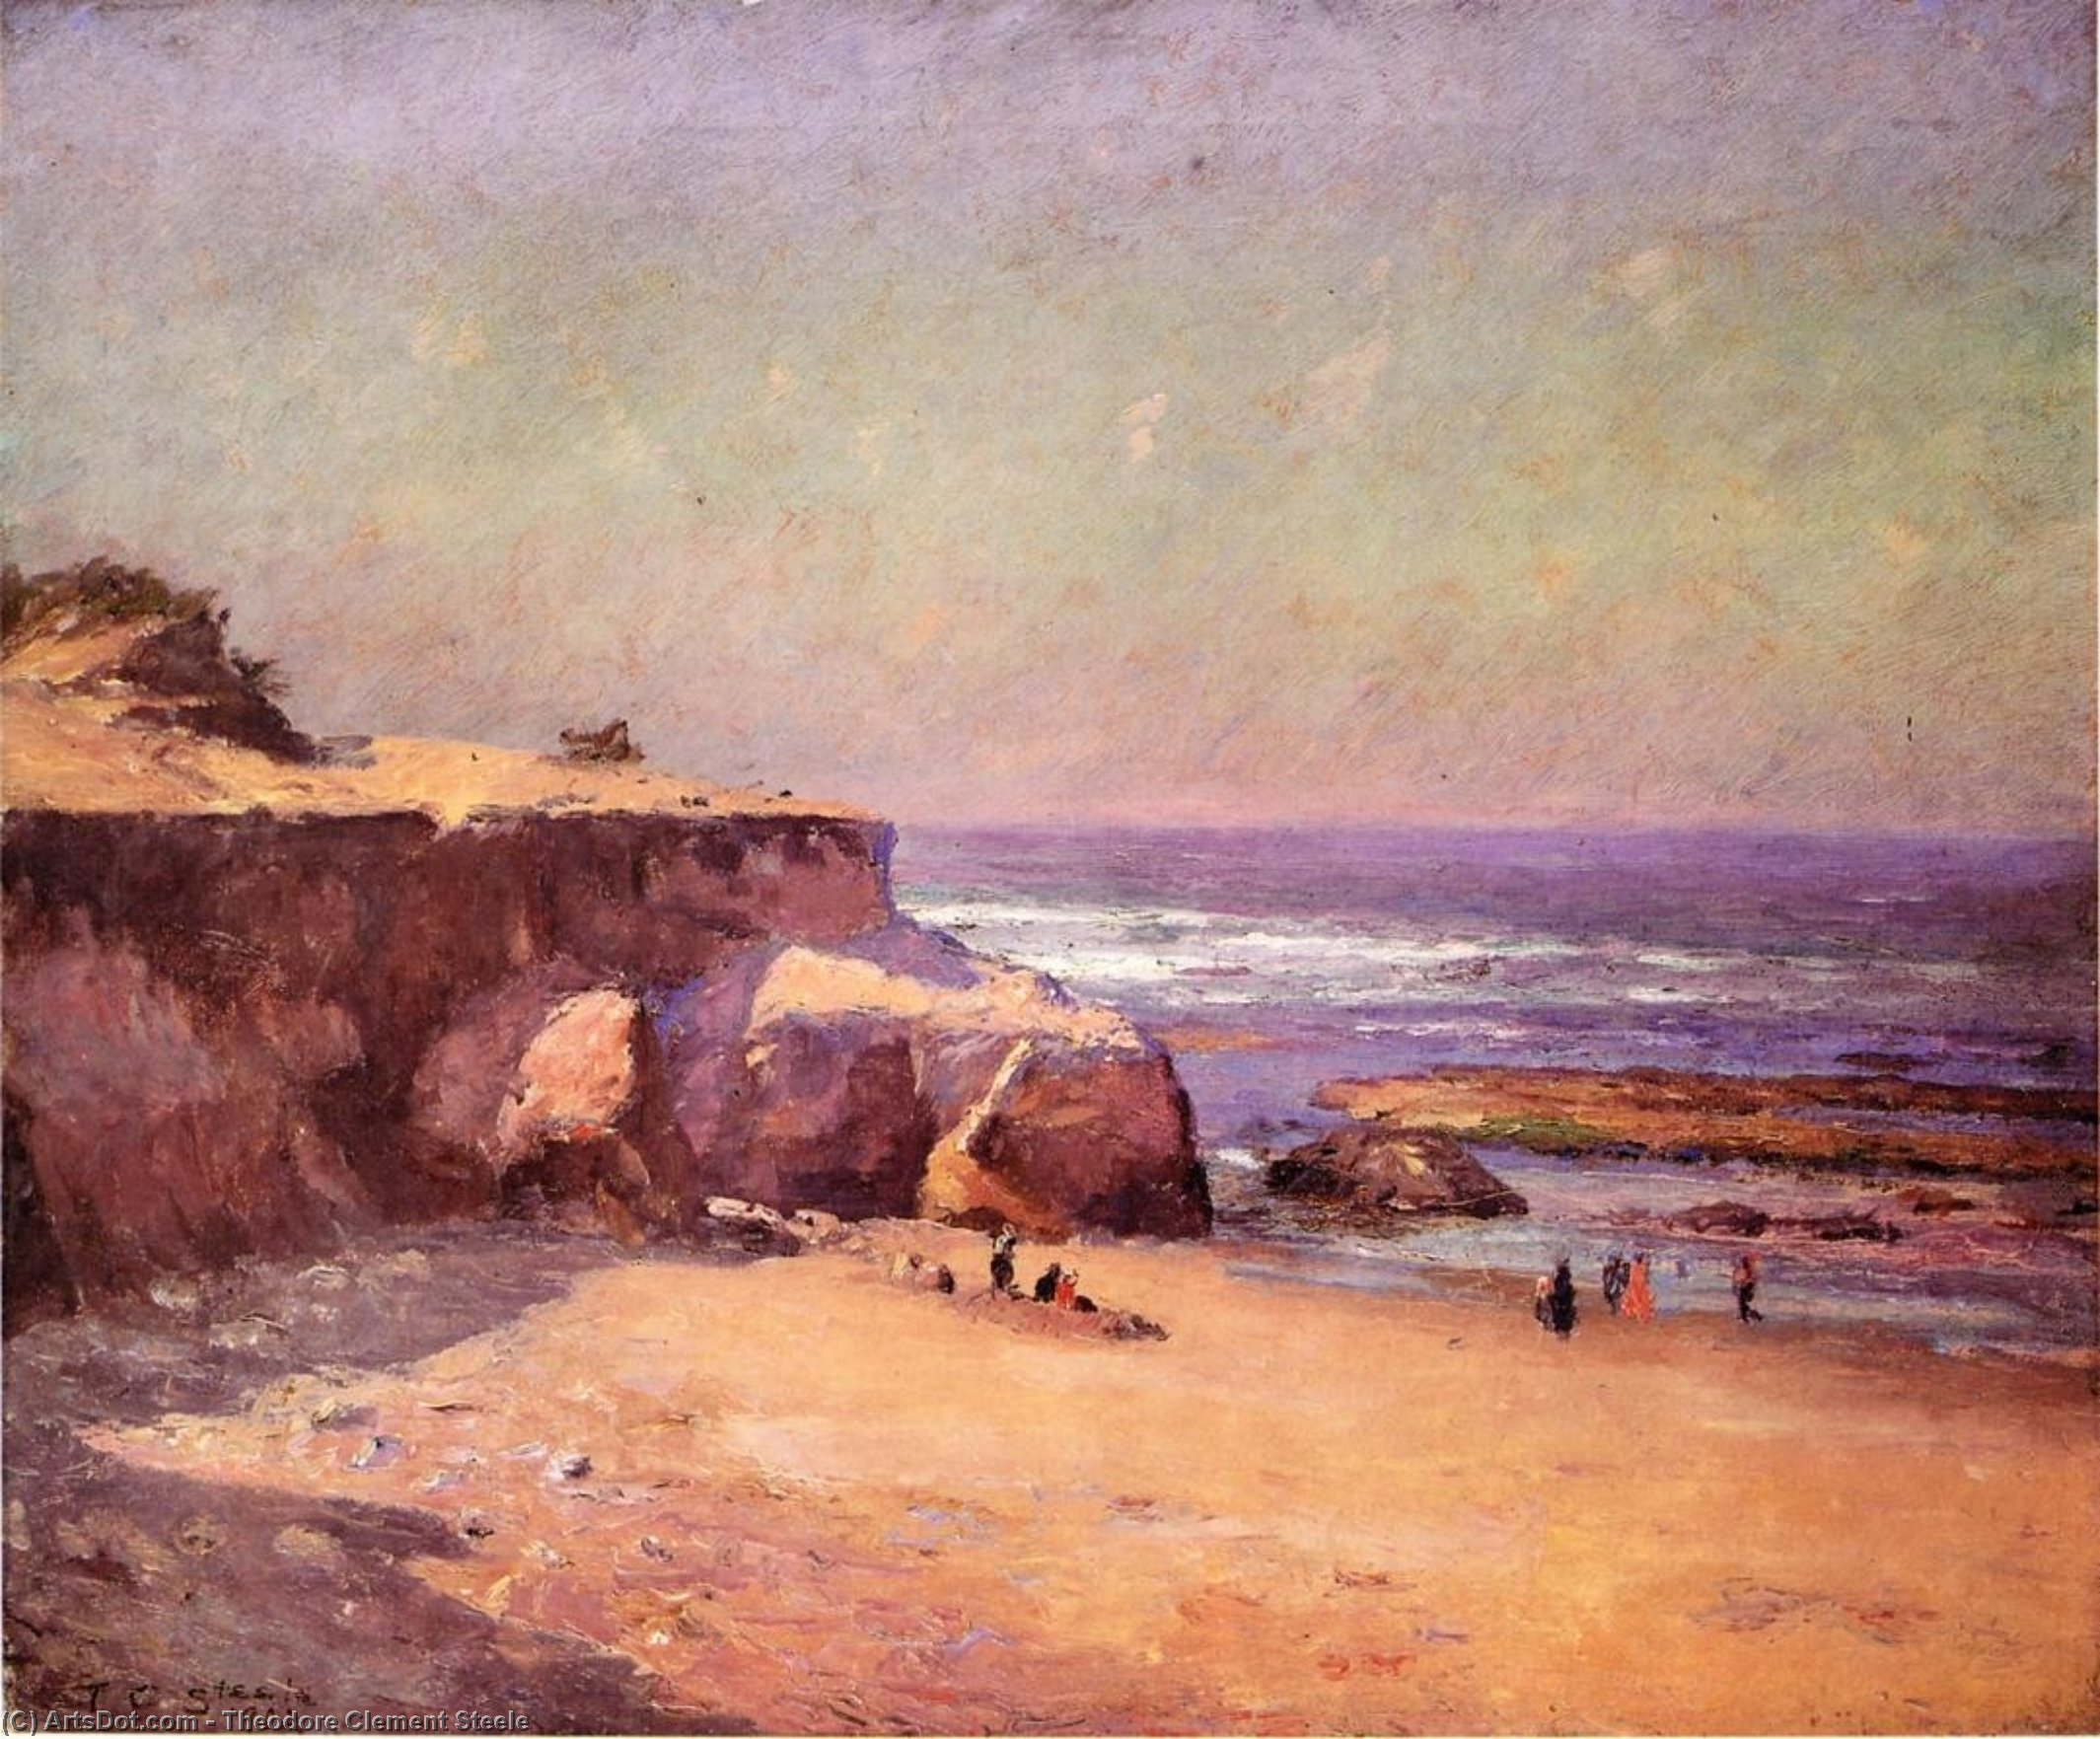 Order Paintings Reproductions | On the Oregon Coast, 1902 by Theodore Clement Steele (1847-1926, United States) | ArtsDot.com